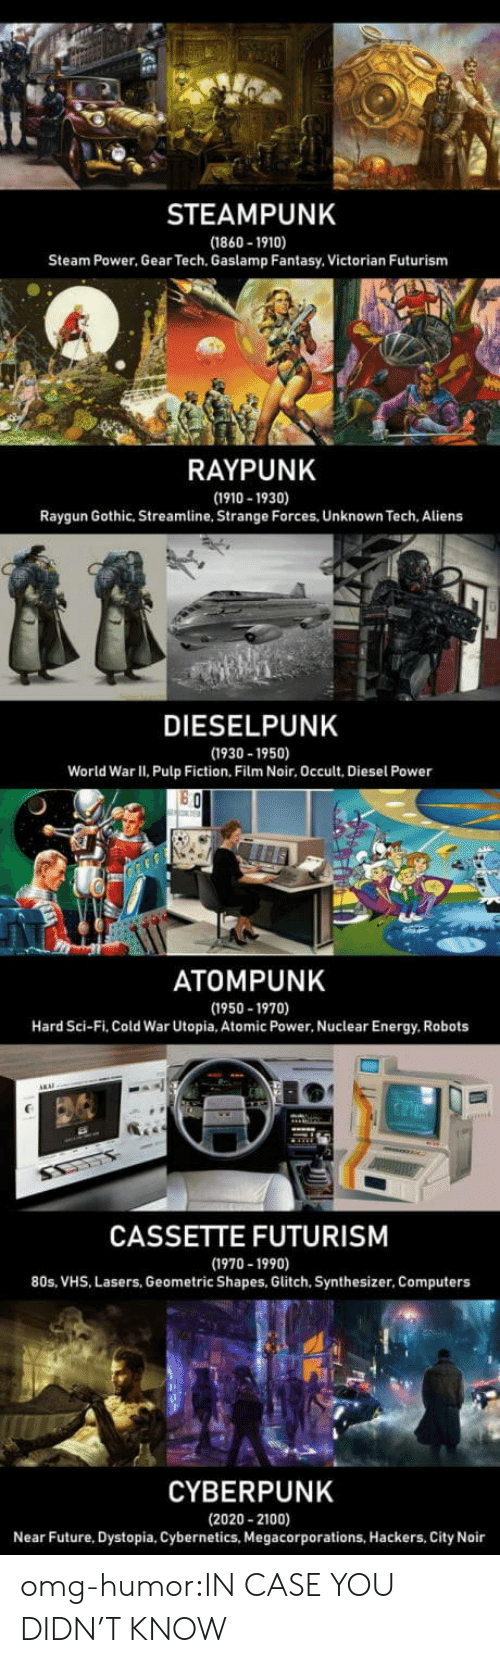 sci fi: STEAMPUNK  (1860-1910)  Steam Power, Gear Tech. Gaslamp Fantasy. Victorian Futurism  RAYPUNK  (1910-1930)  Raygun Gothic, Streamline, Strange Forces, Unknown Tech. Aliens  DIESELPUNK  (1930 -1950)  World War II, Pulp Fiction, Film Noir, Occult, Diesel Power  ATOMPUNK  (1950-1970)  Hard Sci-Fi, Cold War Utopia, Atomic Power, Nuclear Energy, Robots  CASSETTE FUTURISM  (1970-1990)  80s, VHS, Lasers, Geometric Shapes, Glitch, Synthesizer, Computers  CYBERPUNK  (2020- 2100)  Near Future, Dystopia, Cybernetics, Megacorporations, Hackers, City Noir omg-humor:IN CASE YOU DIDN'T KNOW